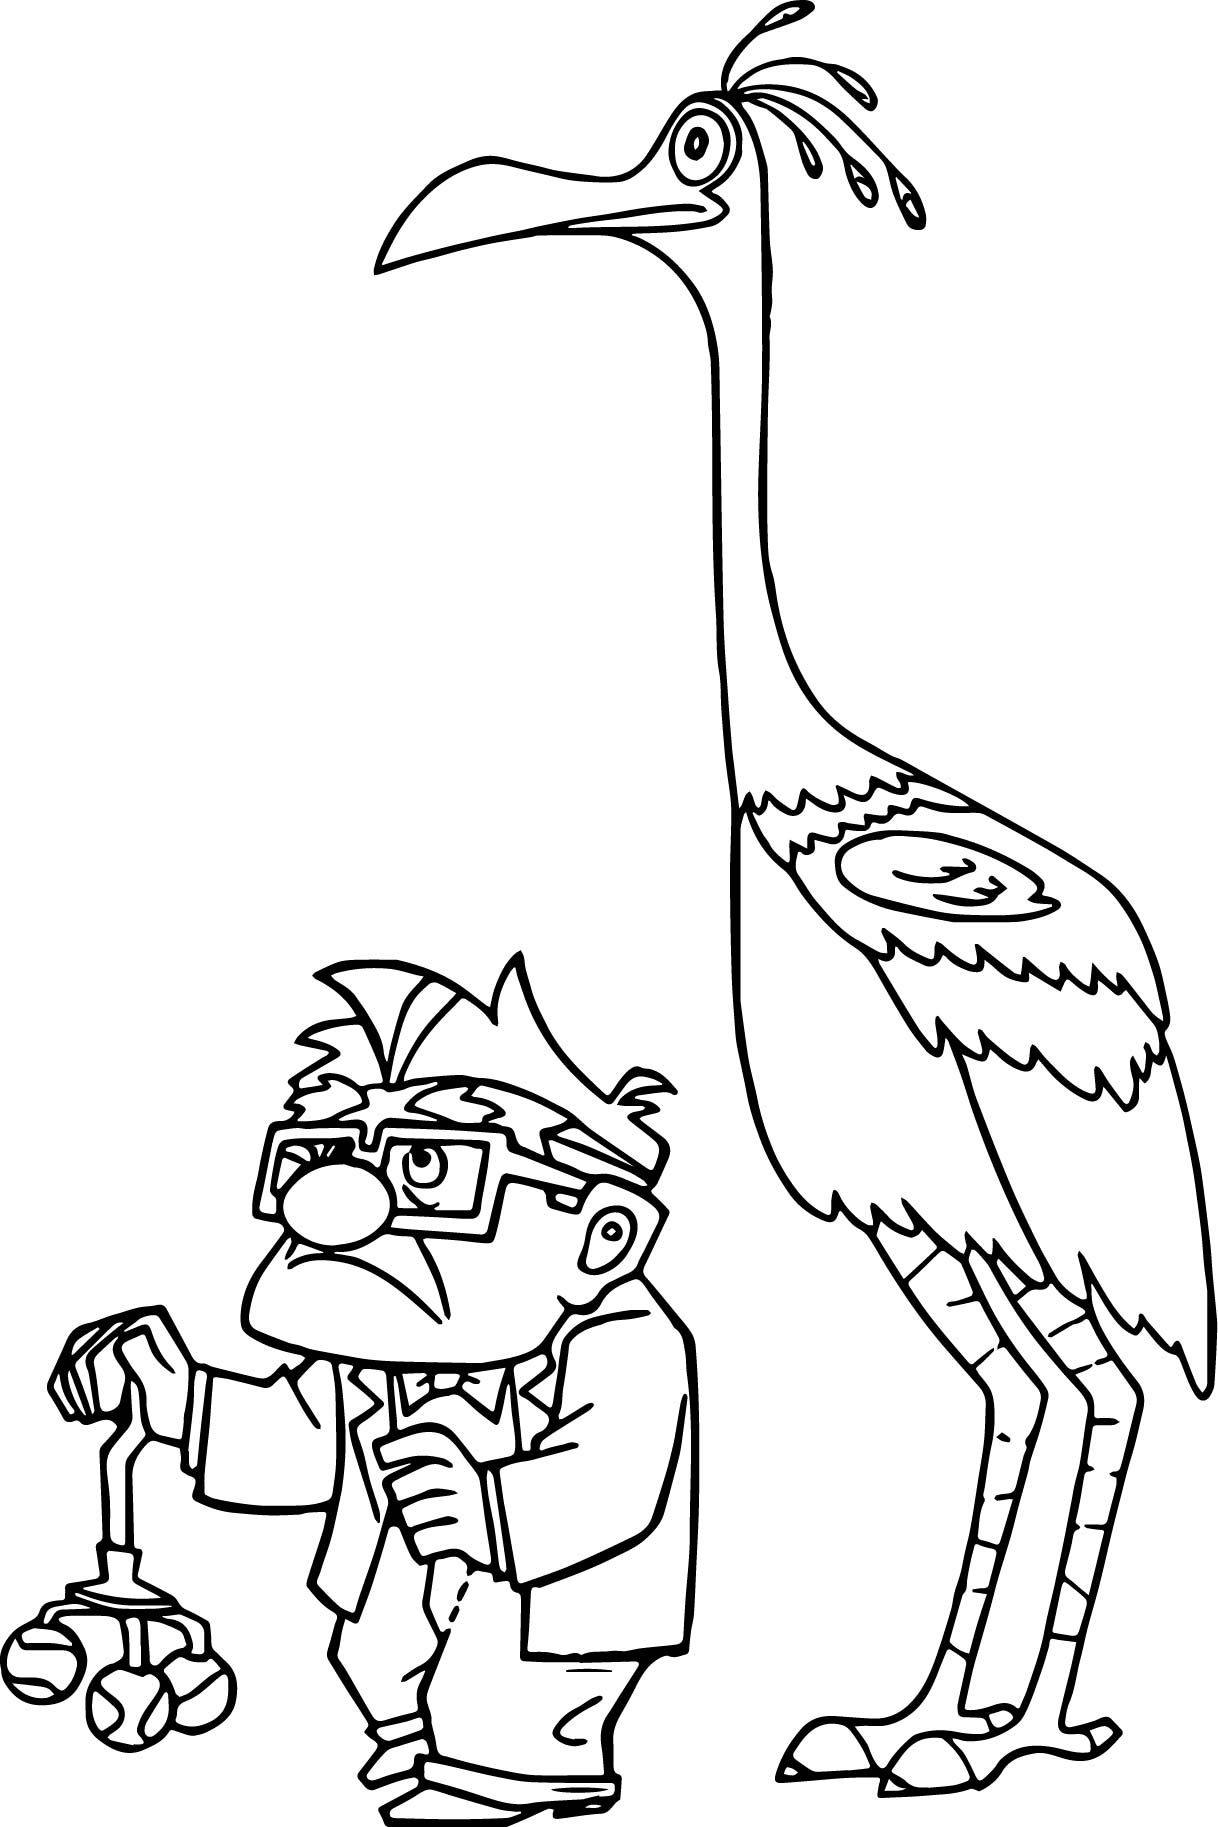 Coloring pages up - Disney Pixar Up Carl Fredricksen And Kevin Coloring Pages